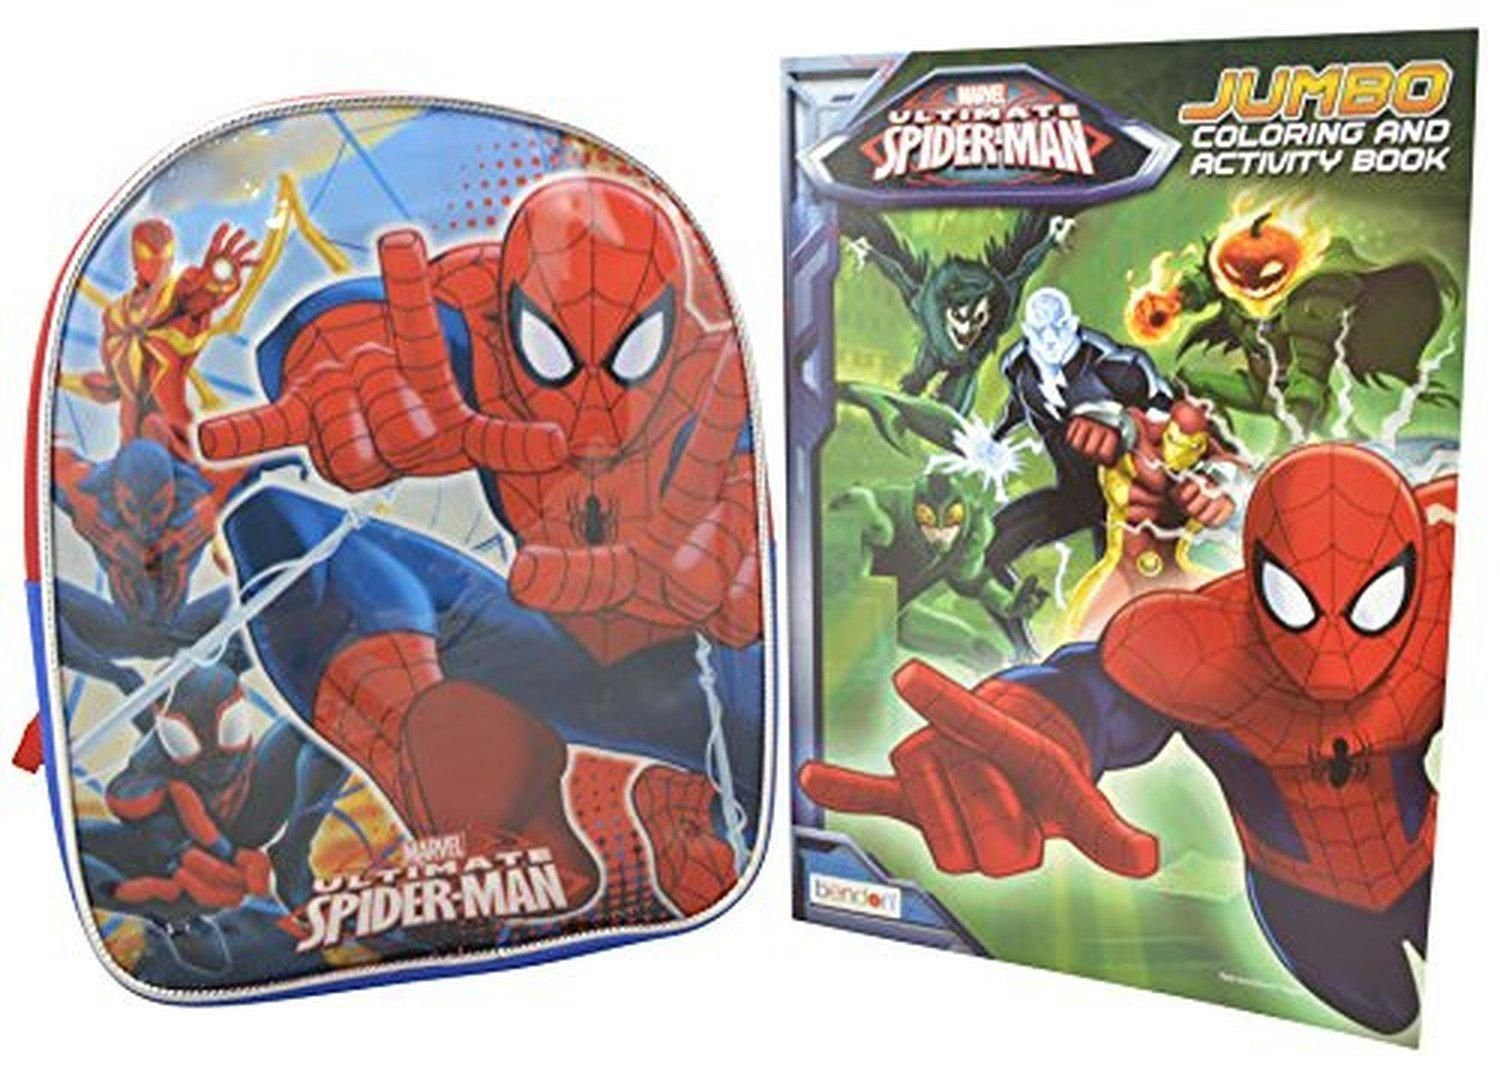 Marvel Spiderman Set Of 10 Toddler Backpack Spiderman Coloring Book Brought To You By Avarsha Com Spiderman Coloring Marvel Spiderman Spiderman